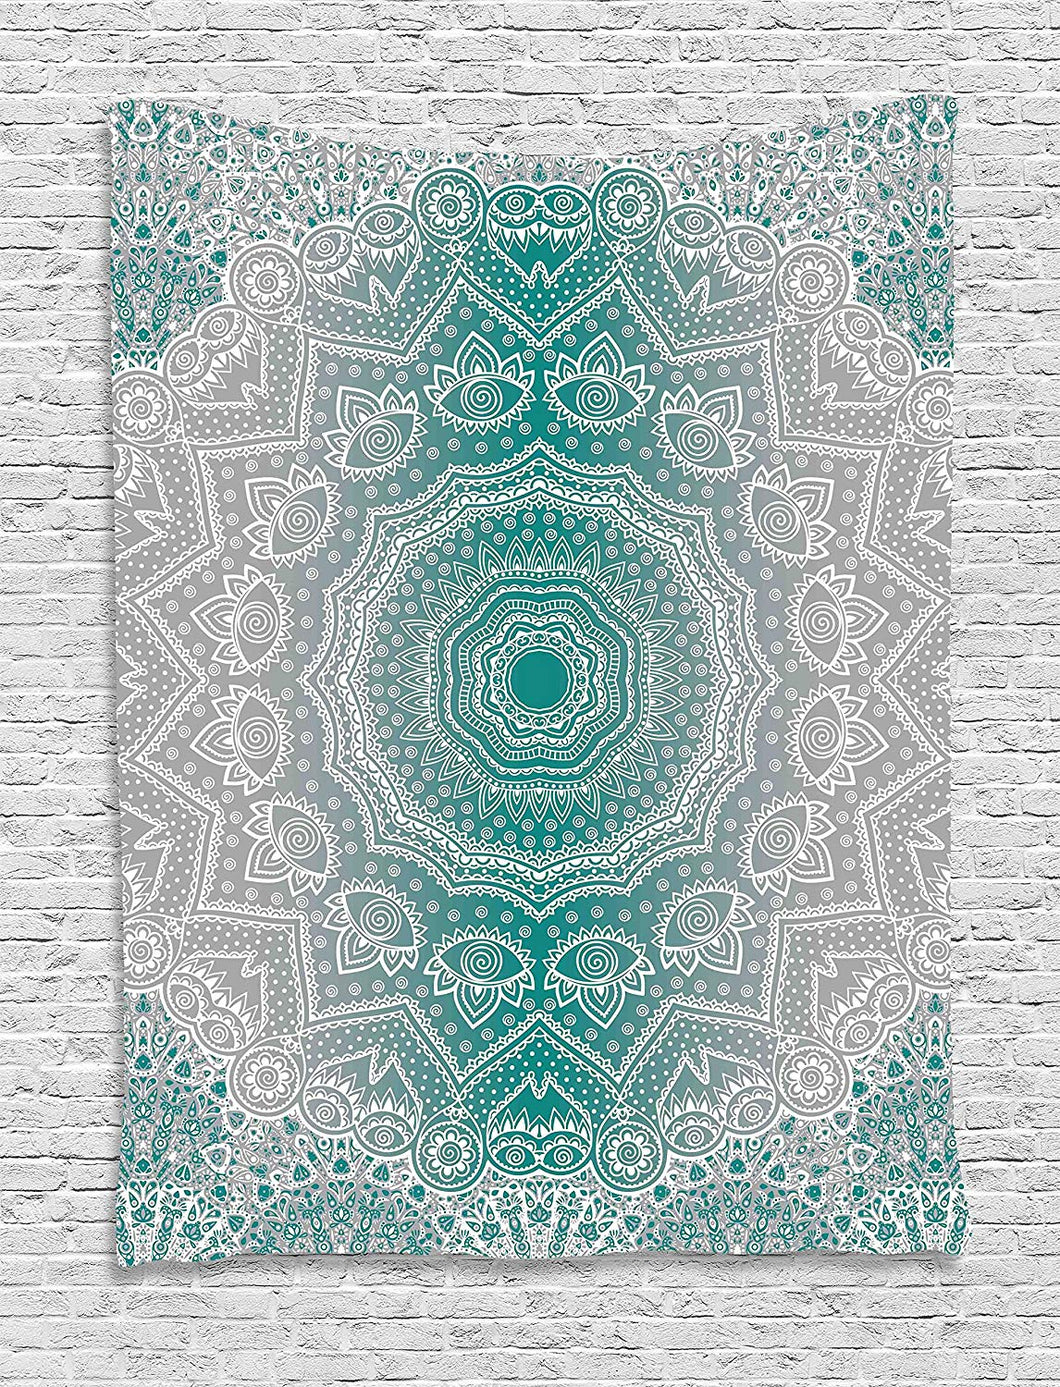 Ambesonne Grey and Teal Tapestry, Mandala Ombre Sacred Geometry Occult Pattern with Flower Lines Display Artwork, Wall Hanging for Bedroom Living Room Dorm, 60 W x 80 L Inches, Teal Grey